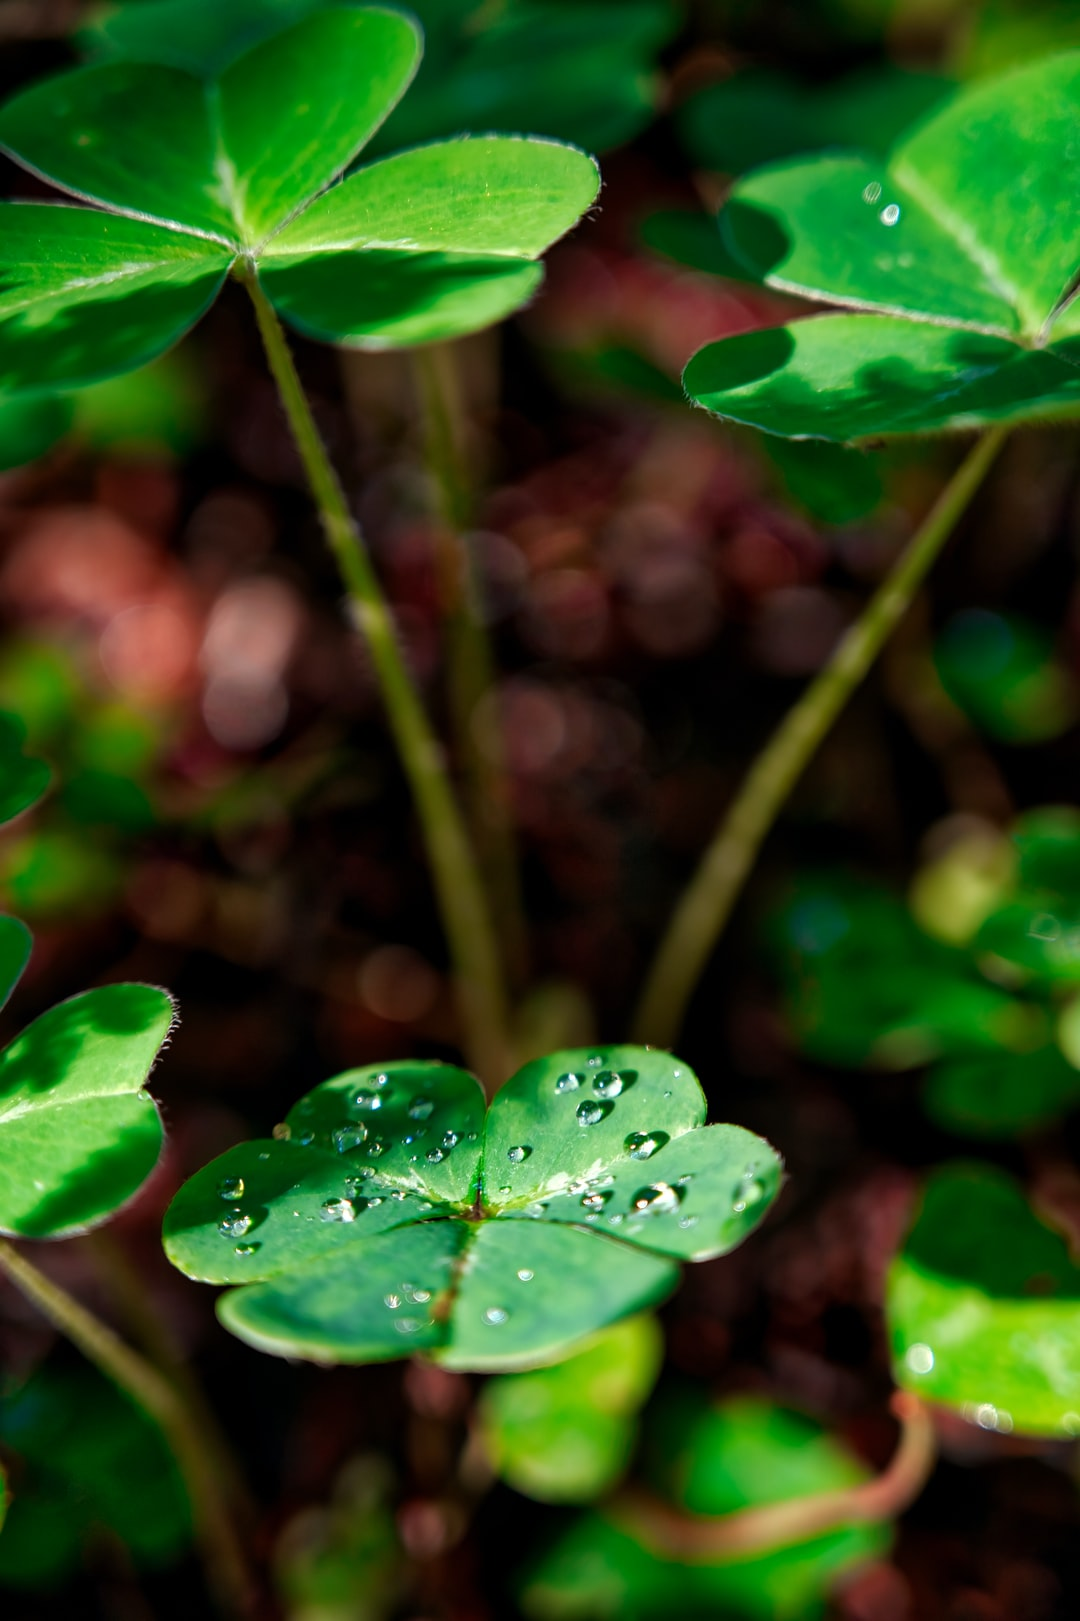 Close up shop of a 3 leaf clover with water drops